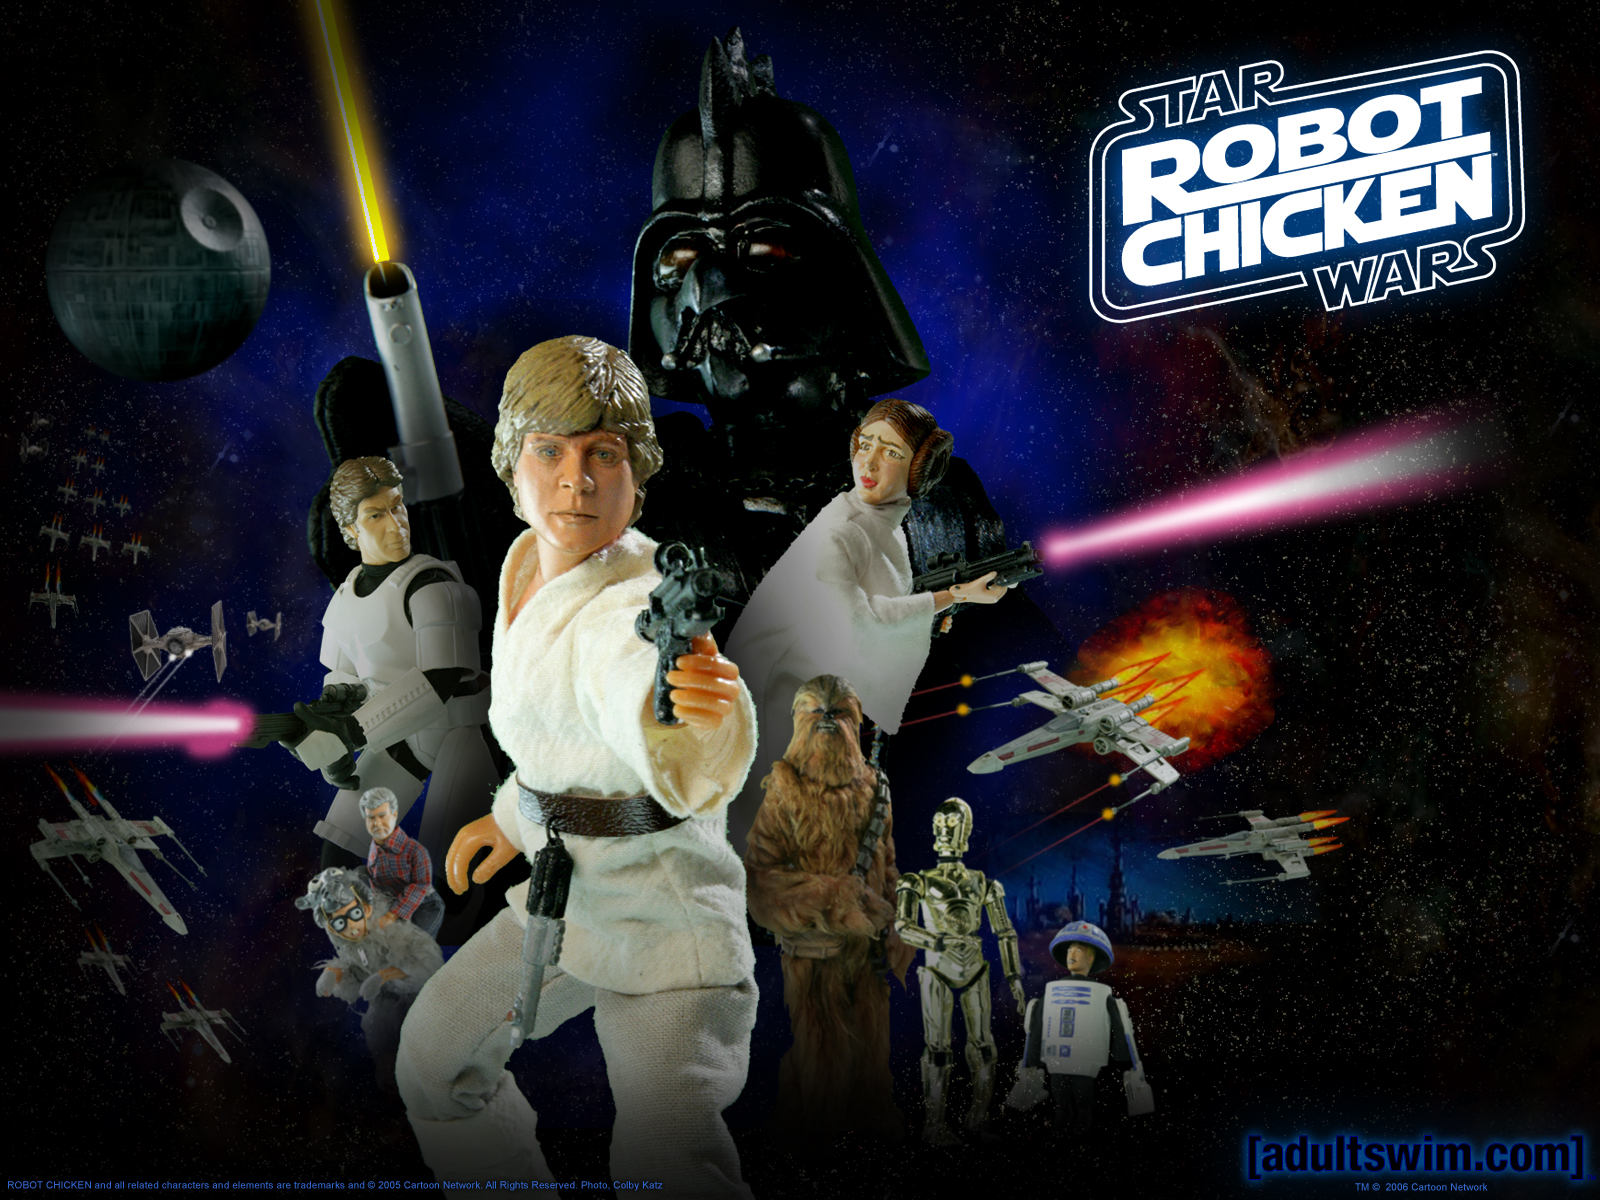 On 7 16 p m friki humor star wars videos star wars robot chicken